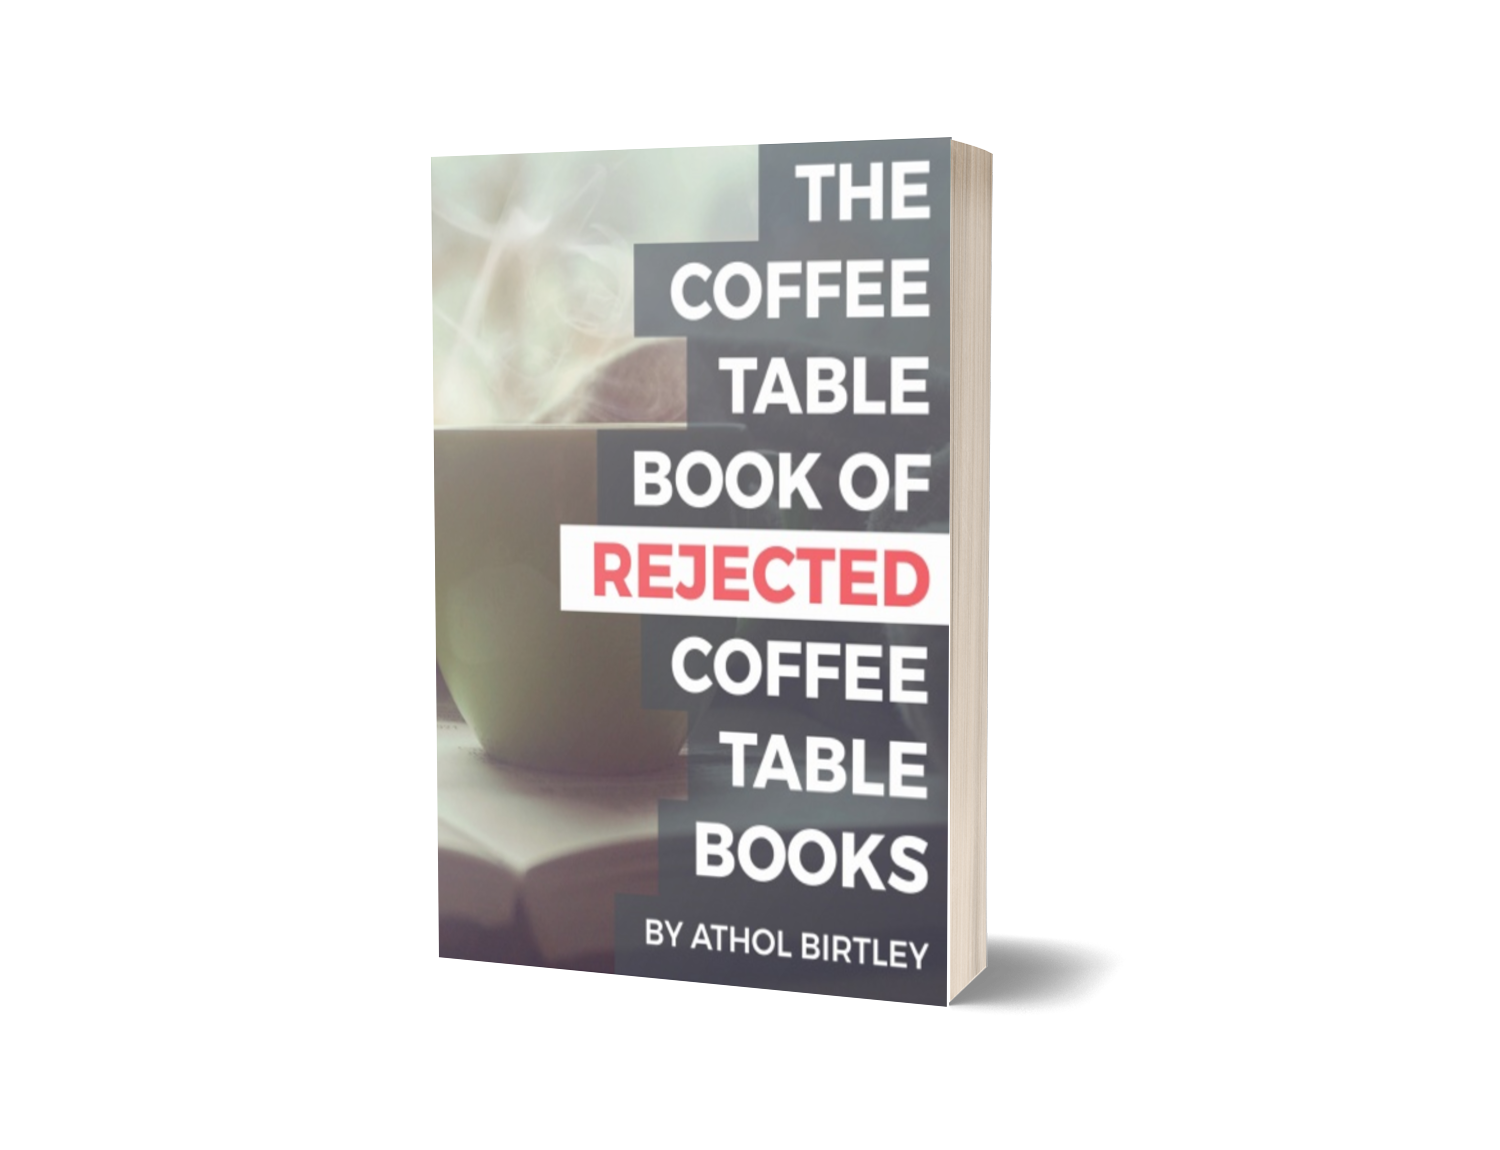 The Coffee Table Book of Rejected Coffee Table Books